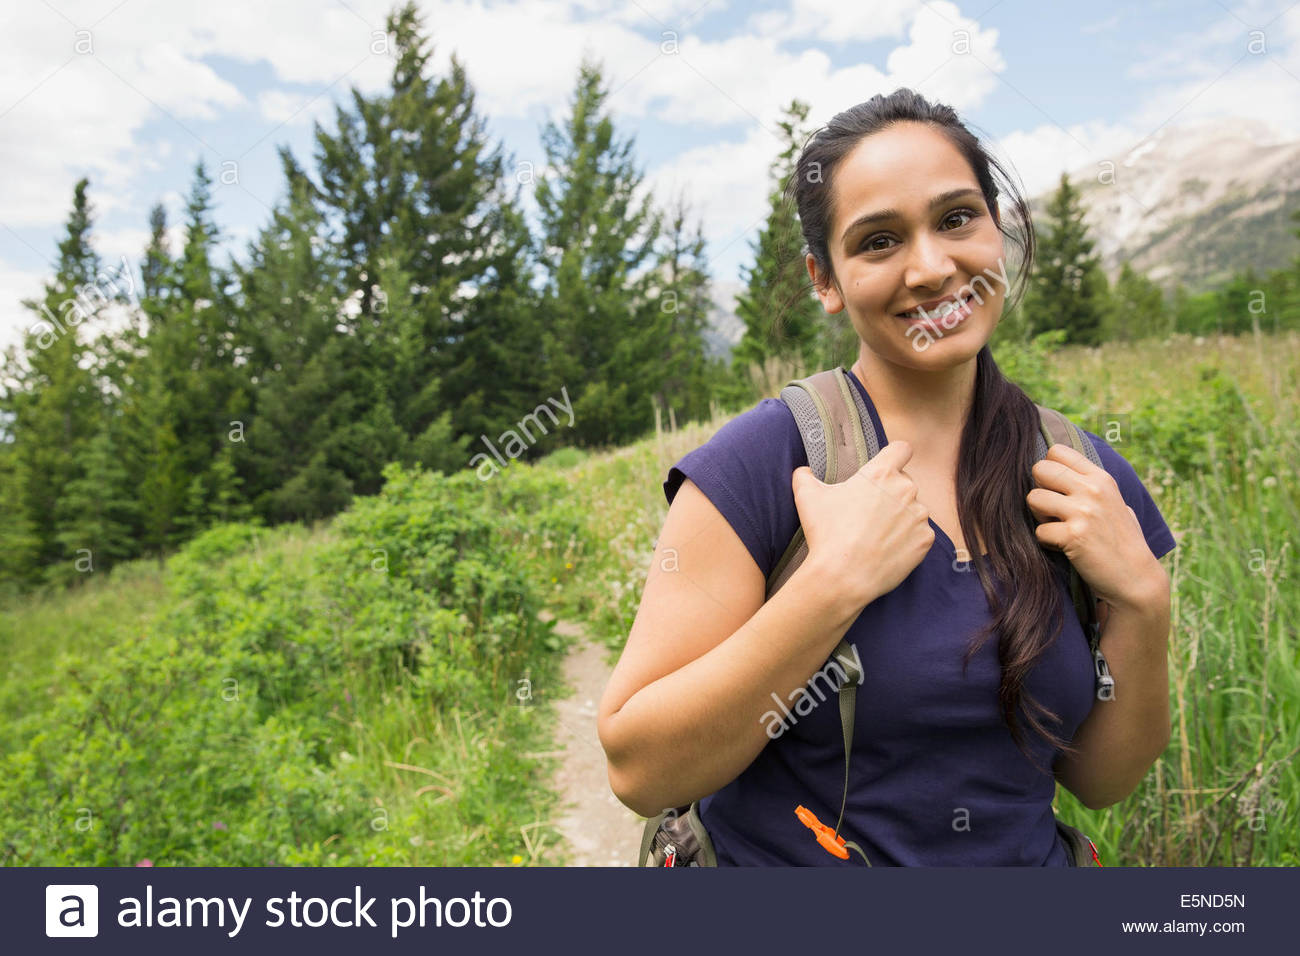 Portrait of smiling woman on hiking trail - Stock Image